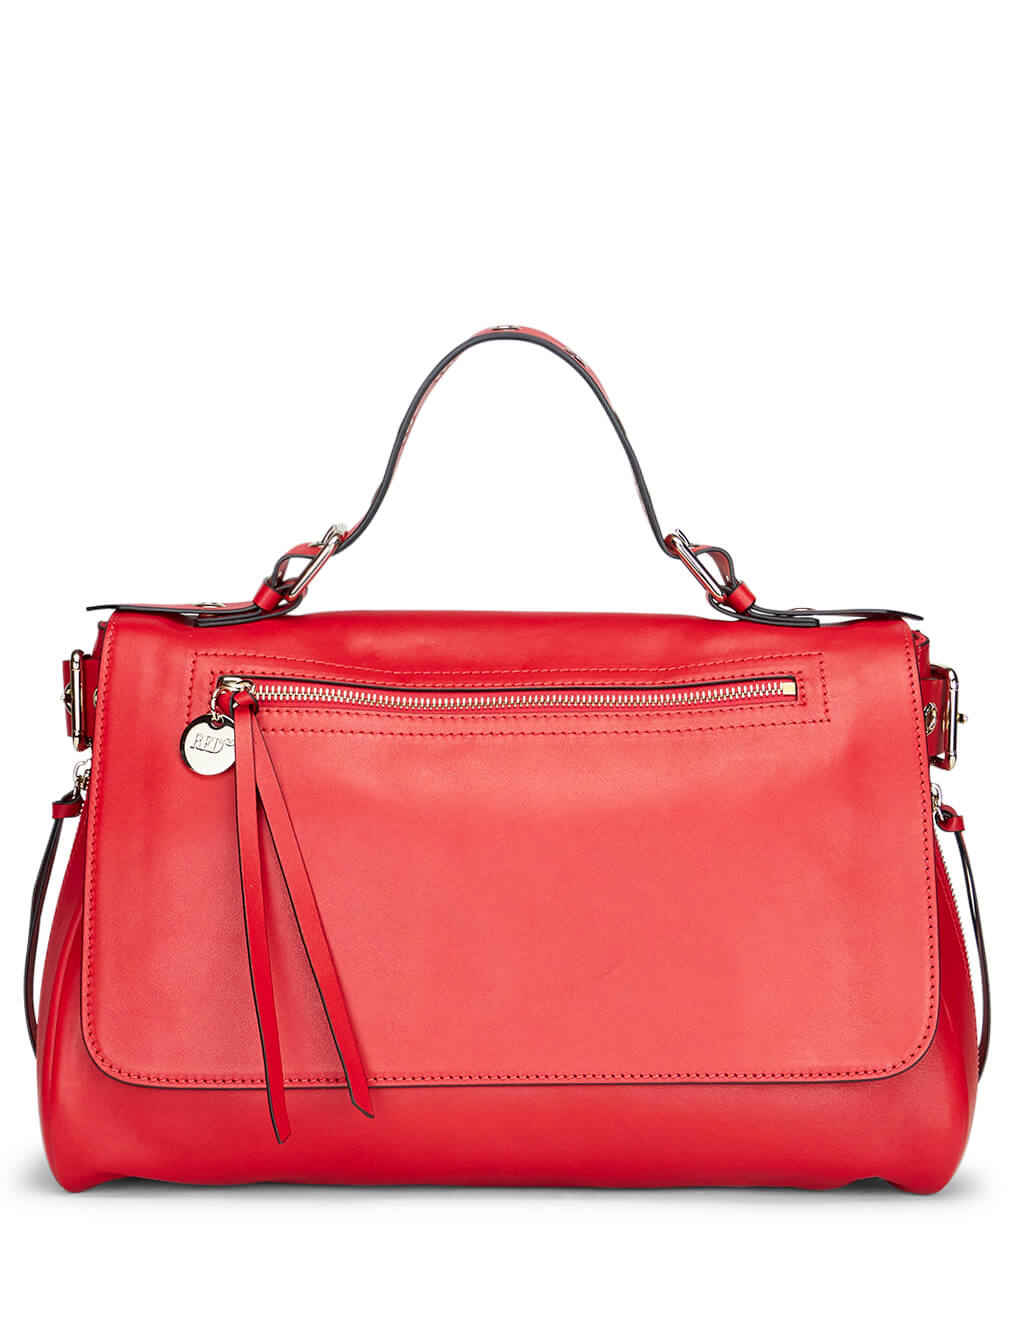 RED(V) Women's Red Leather Bikered Handbag sq2b0b62nzwcc7